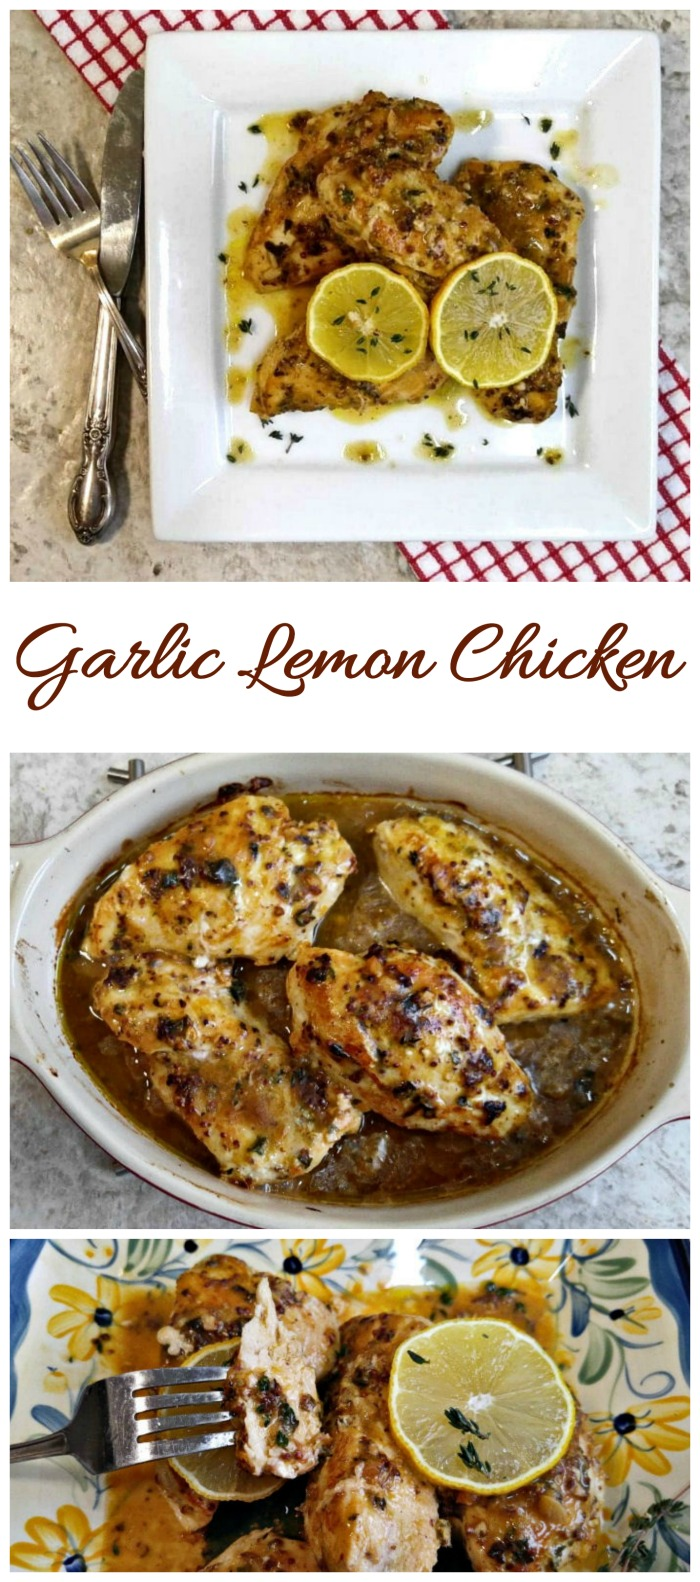 This garlic lemon chicken has an amazing sauce that is tart and savory. It's ready in about 30 minutes and is easy to prepare.